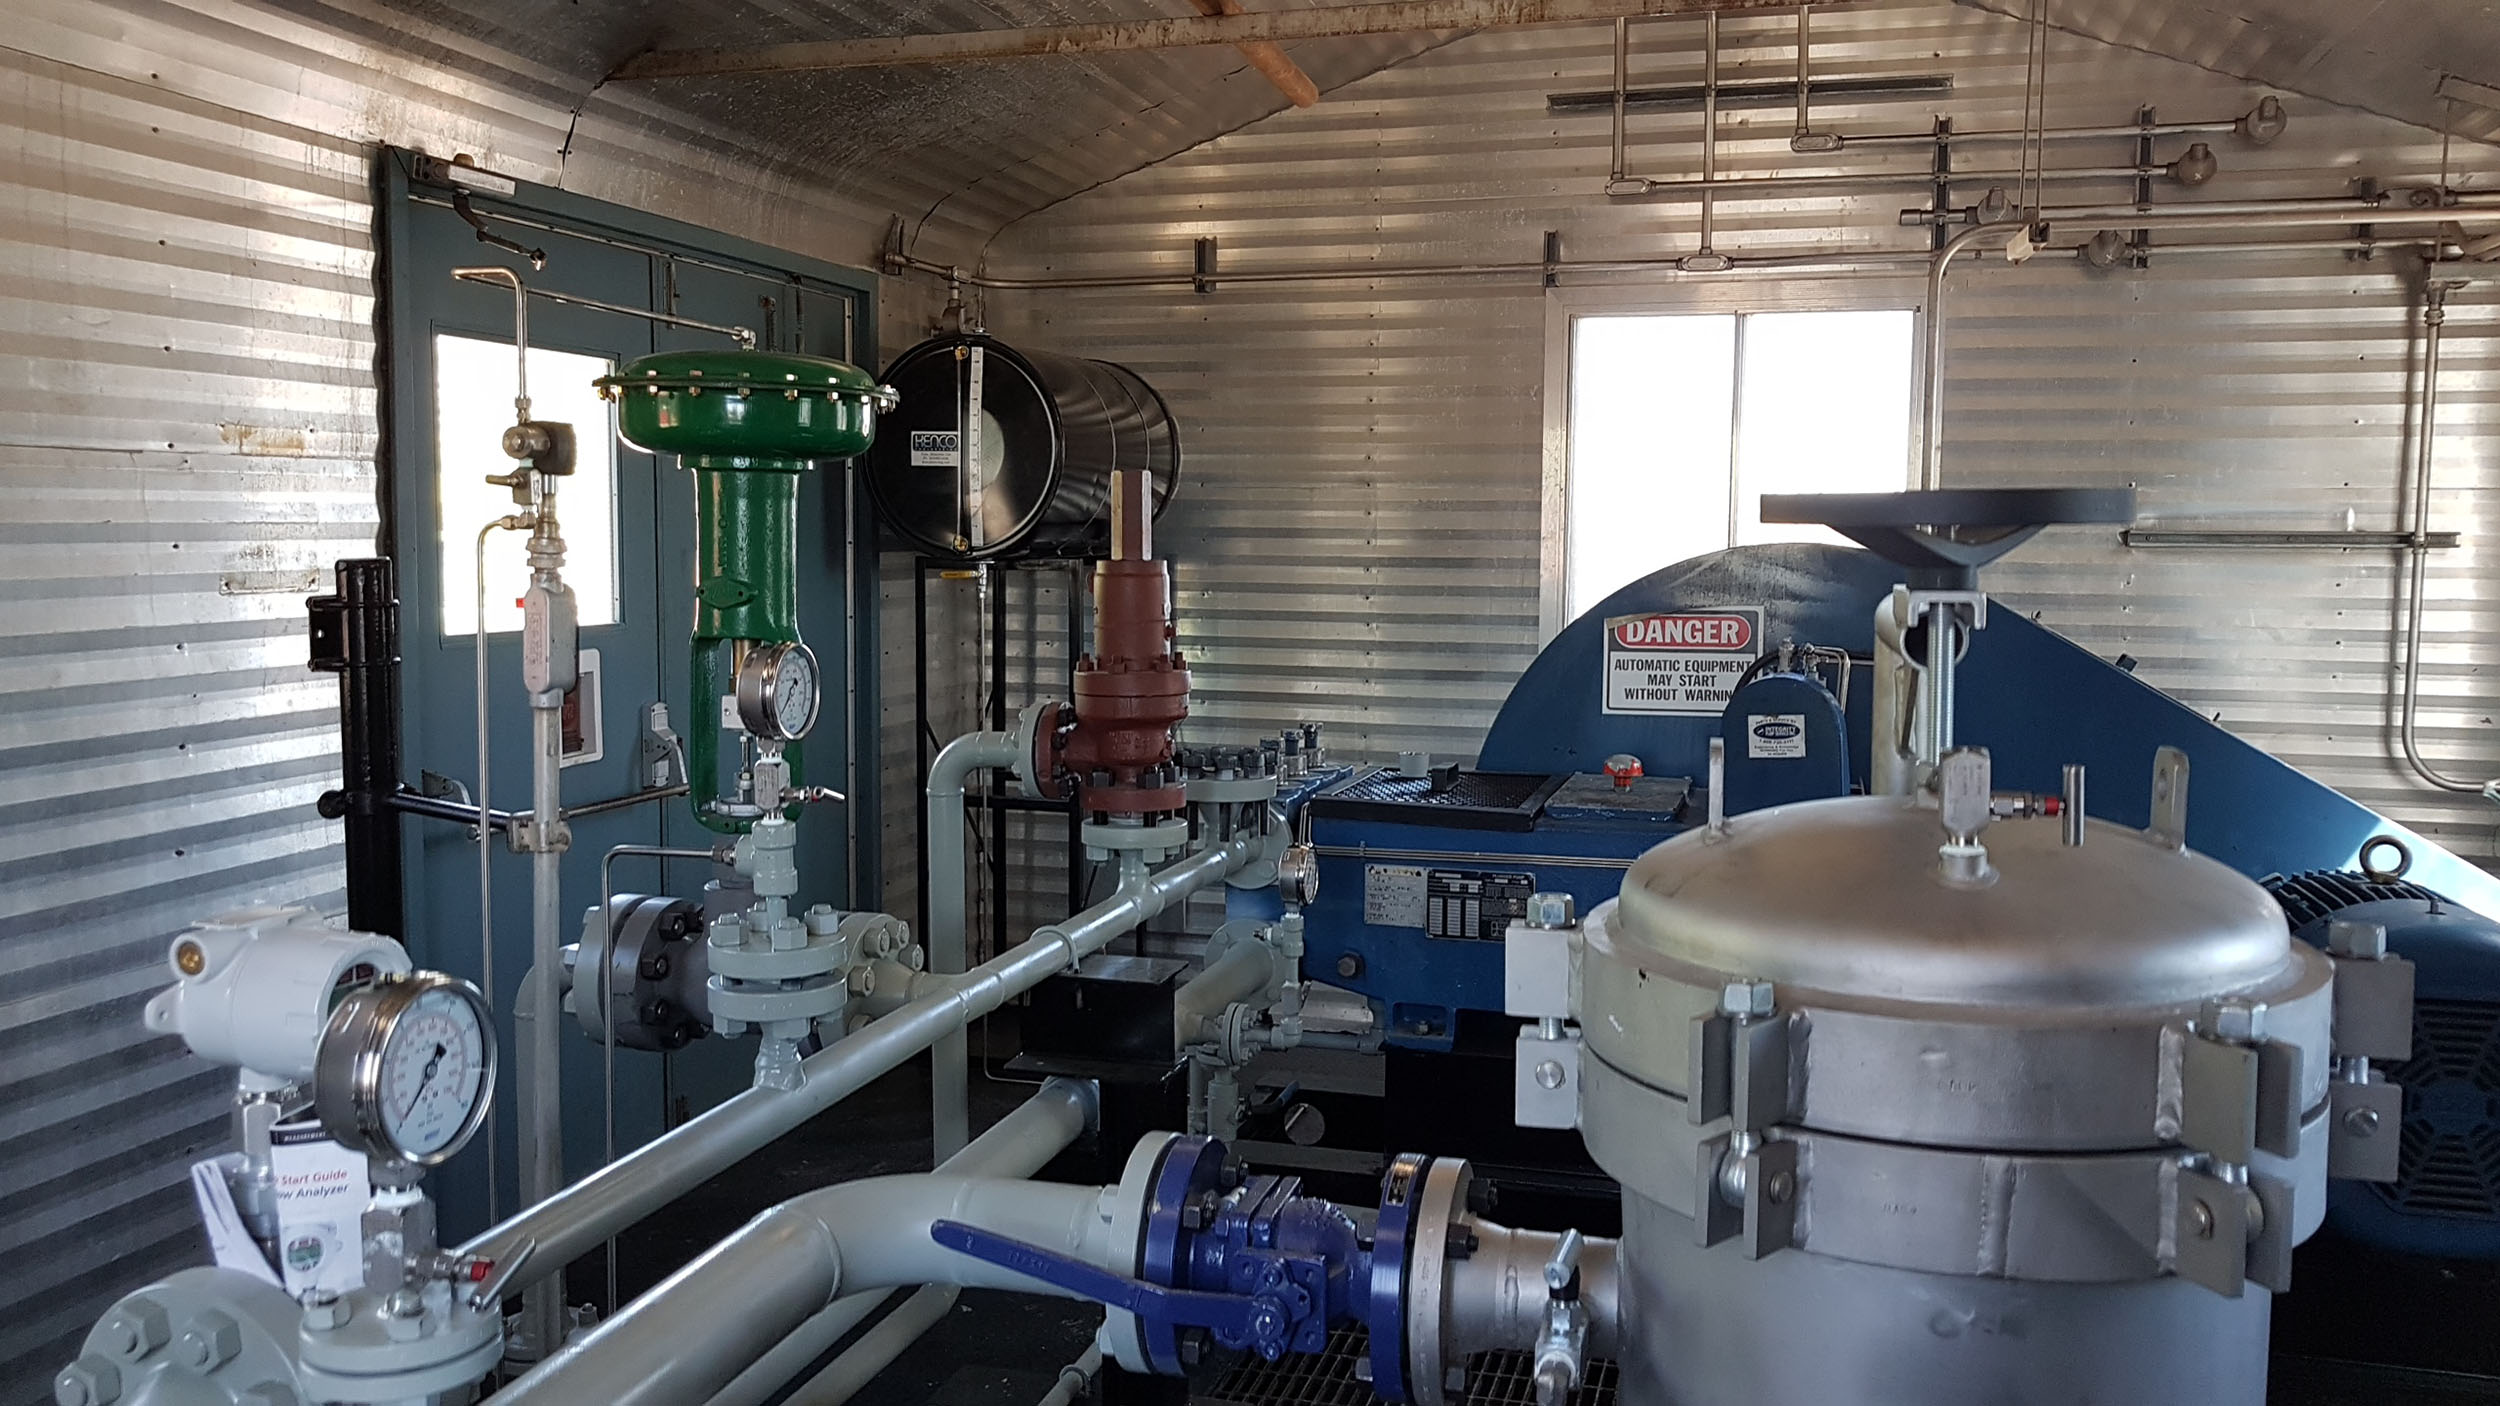 Used surplus 100HP National 100T-4M Full Sour Triplex Pump Package for sale in Fox Creek Alberta Canada oilfield oil & gas energy production equipment 5